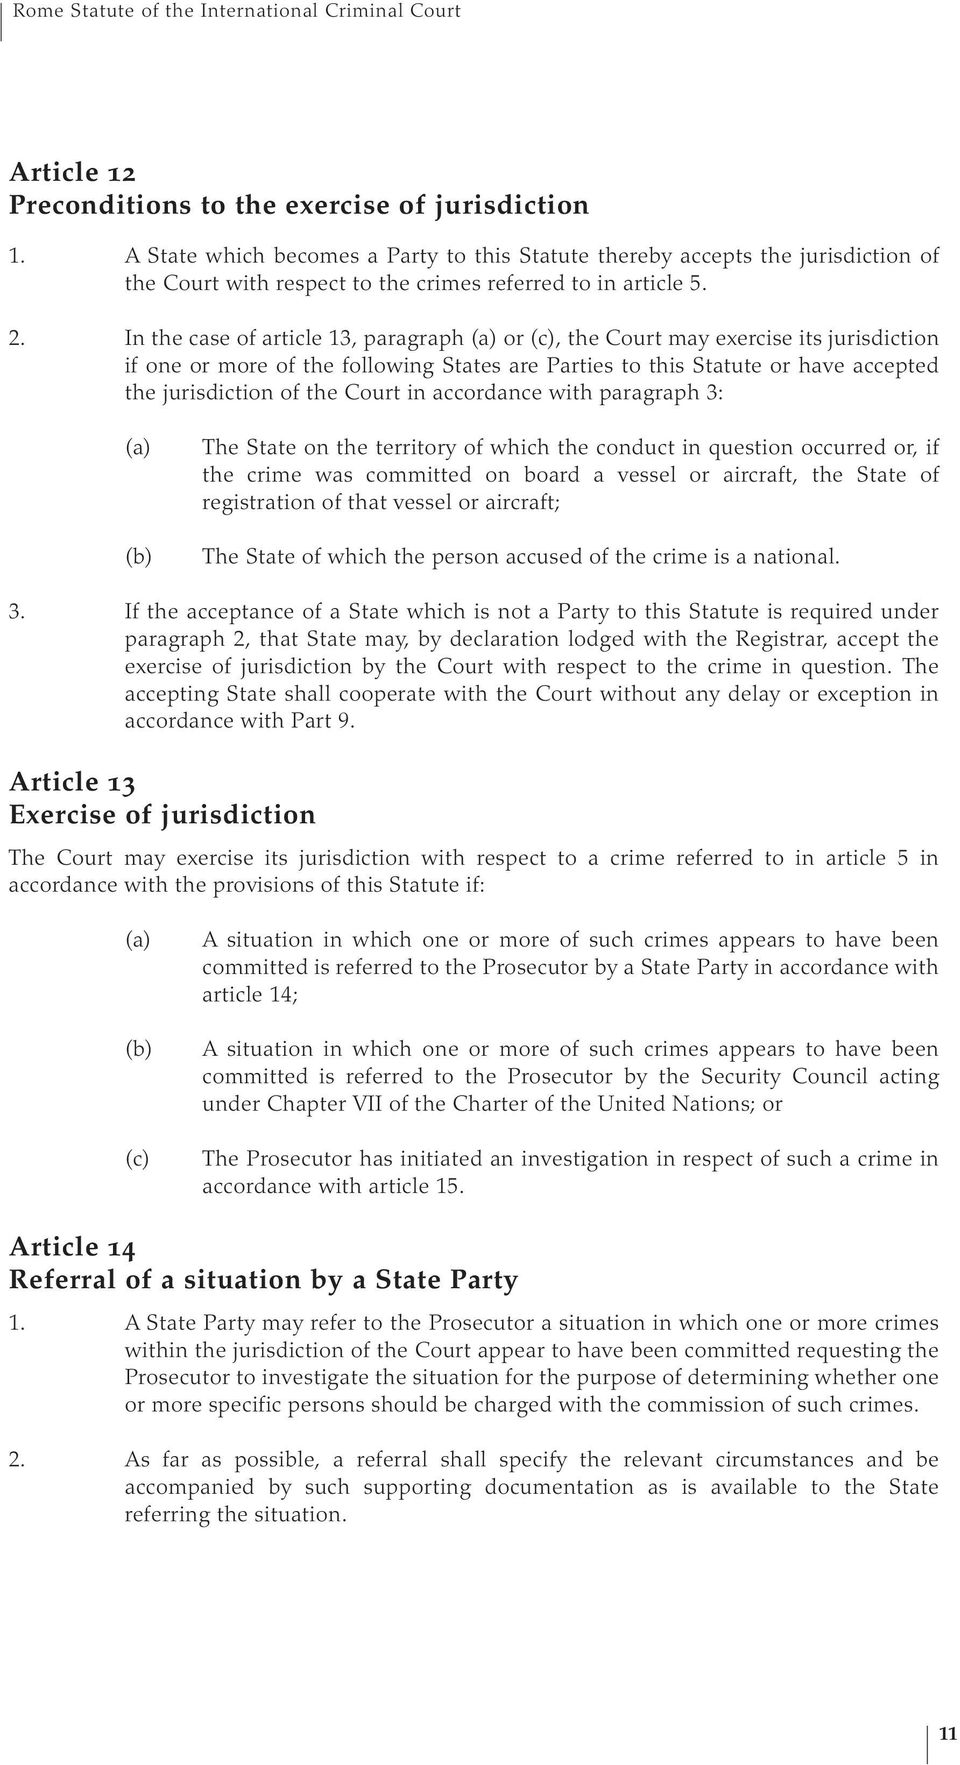 In the case of article 13, paragraph or, the Court may exercise its jurisdiction if one or more of the following States are Parties to this Statute or have accepted the jurisdiction of the Court in